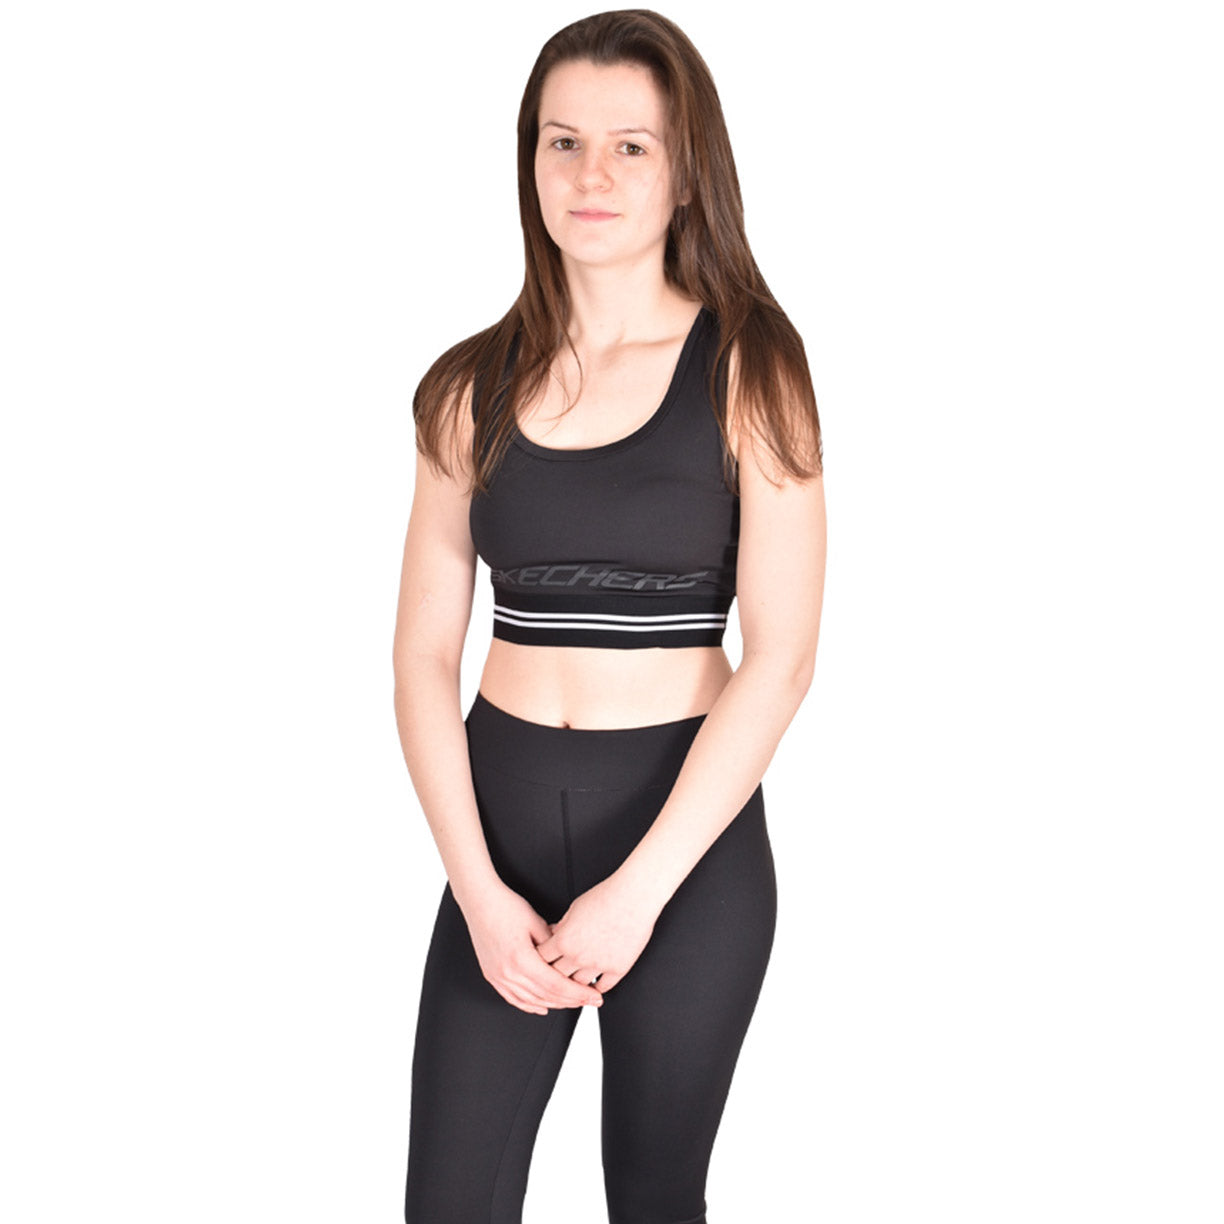 Skechers Sports Bra Lyanna Black